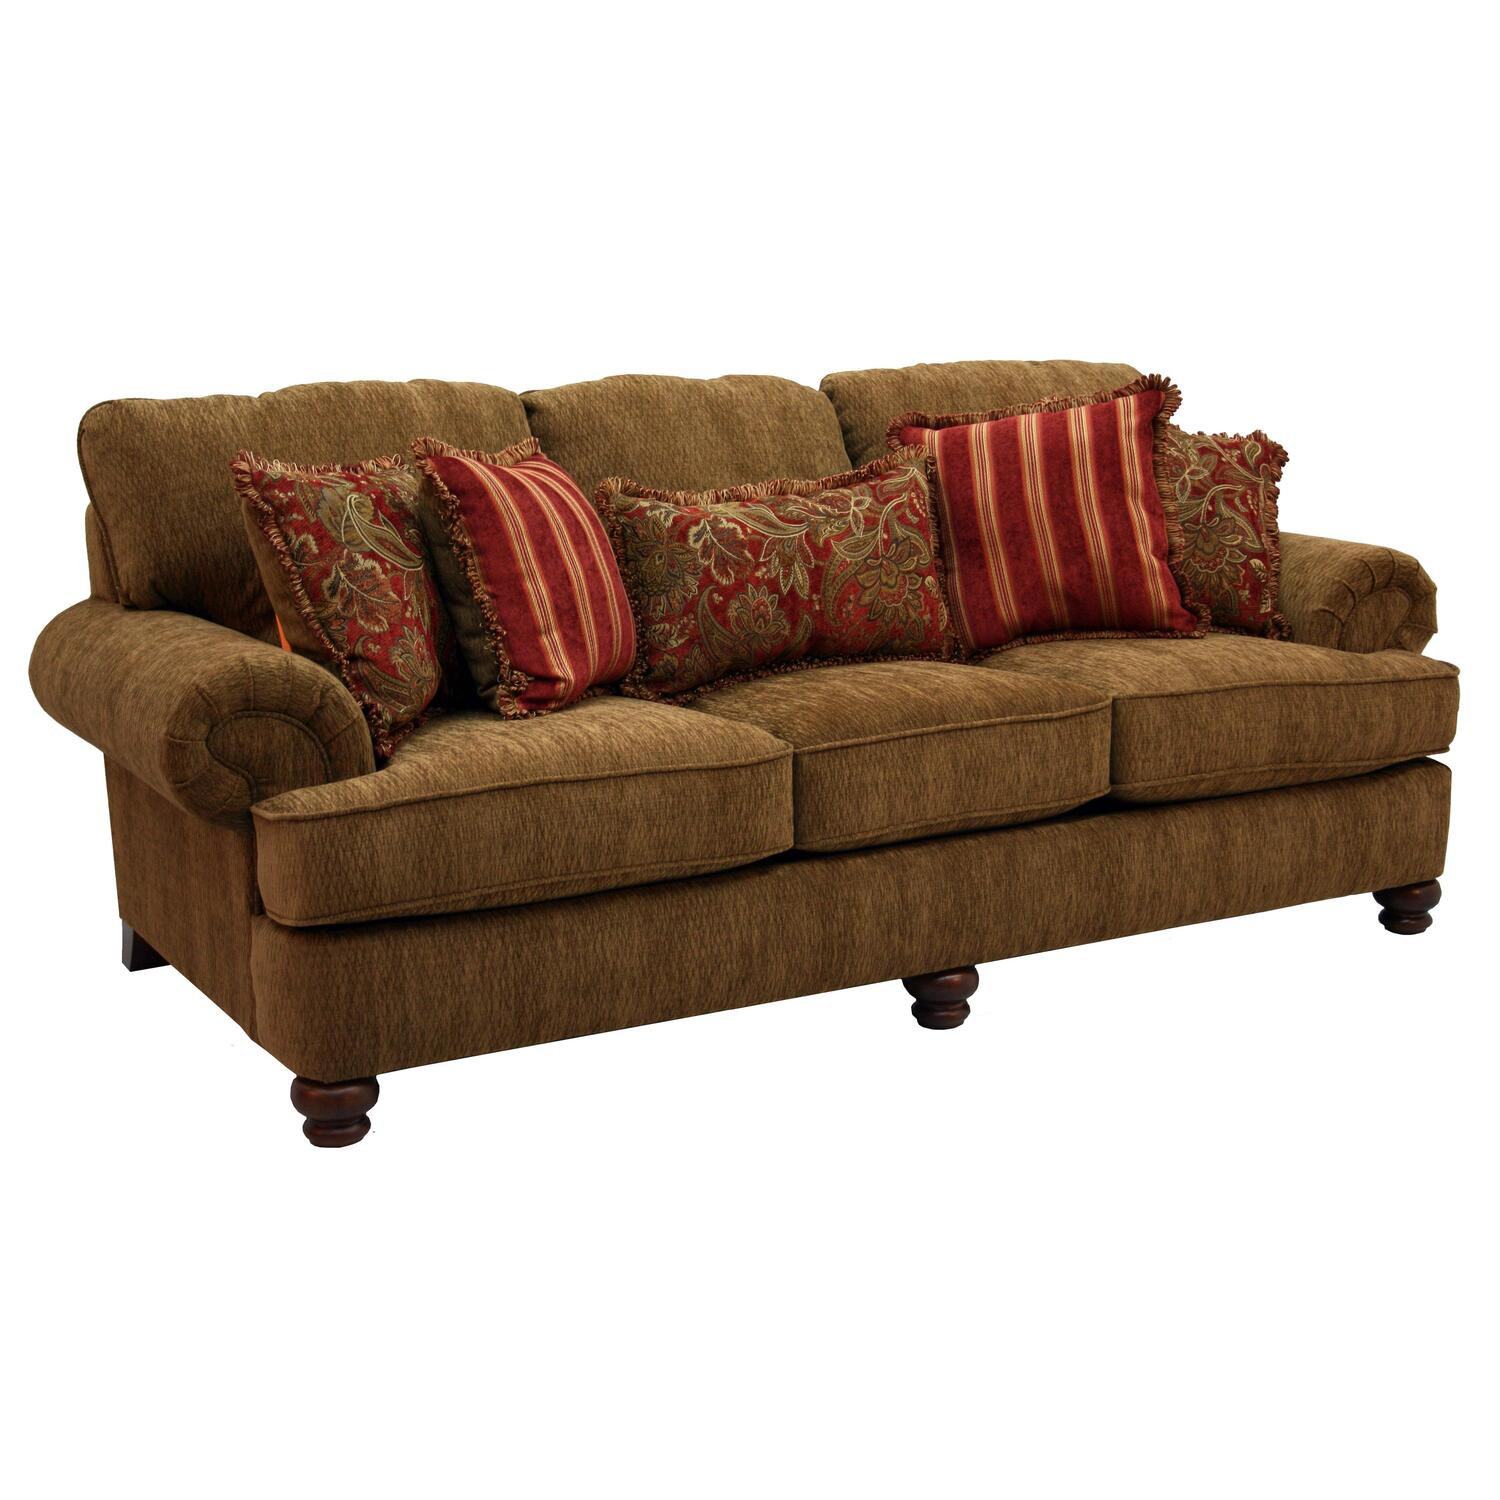 jackson furniture sectional sofas office sofa belmont by oj commerce 4347 03 2048